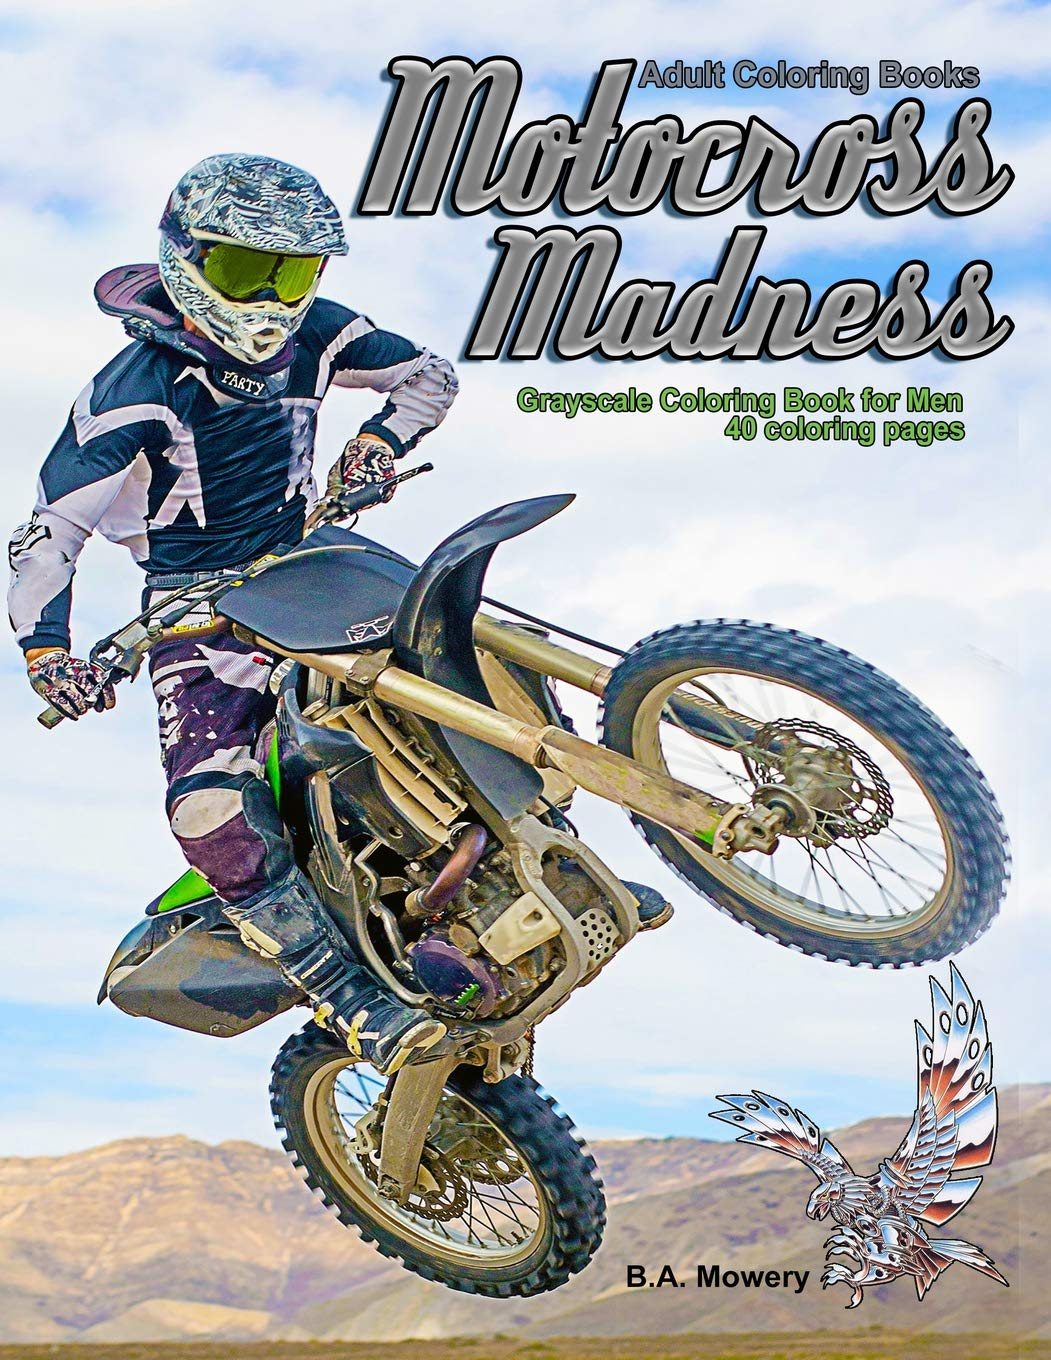 Amazon Com Adult Coloring Books Motocross Madness Grayscale Coloring Book For Men 40 Coloring Pages Of Motocross Motorcycles Dirt Bikes Racing Motocross Stunts And More 9781979370615 Mowery B A Books